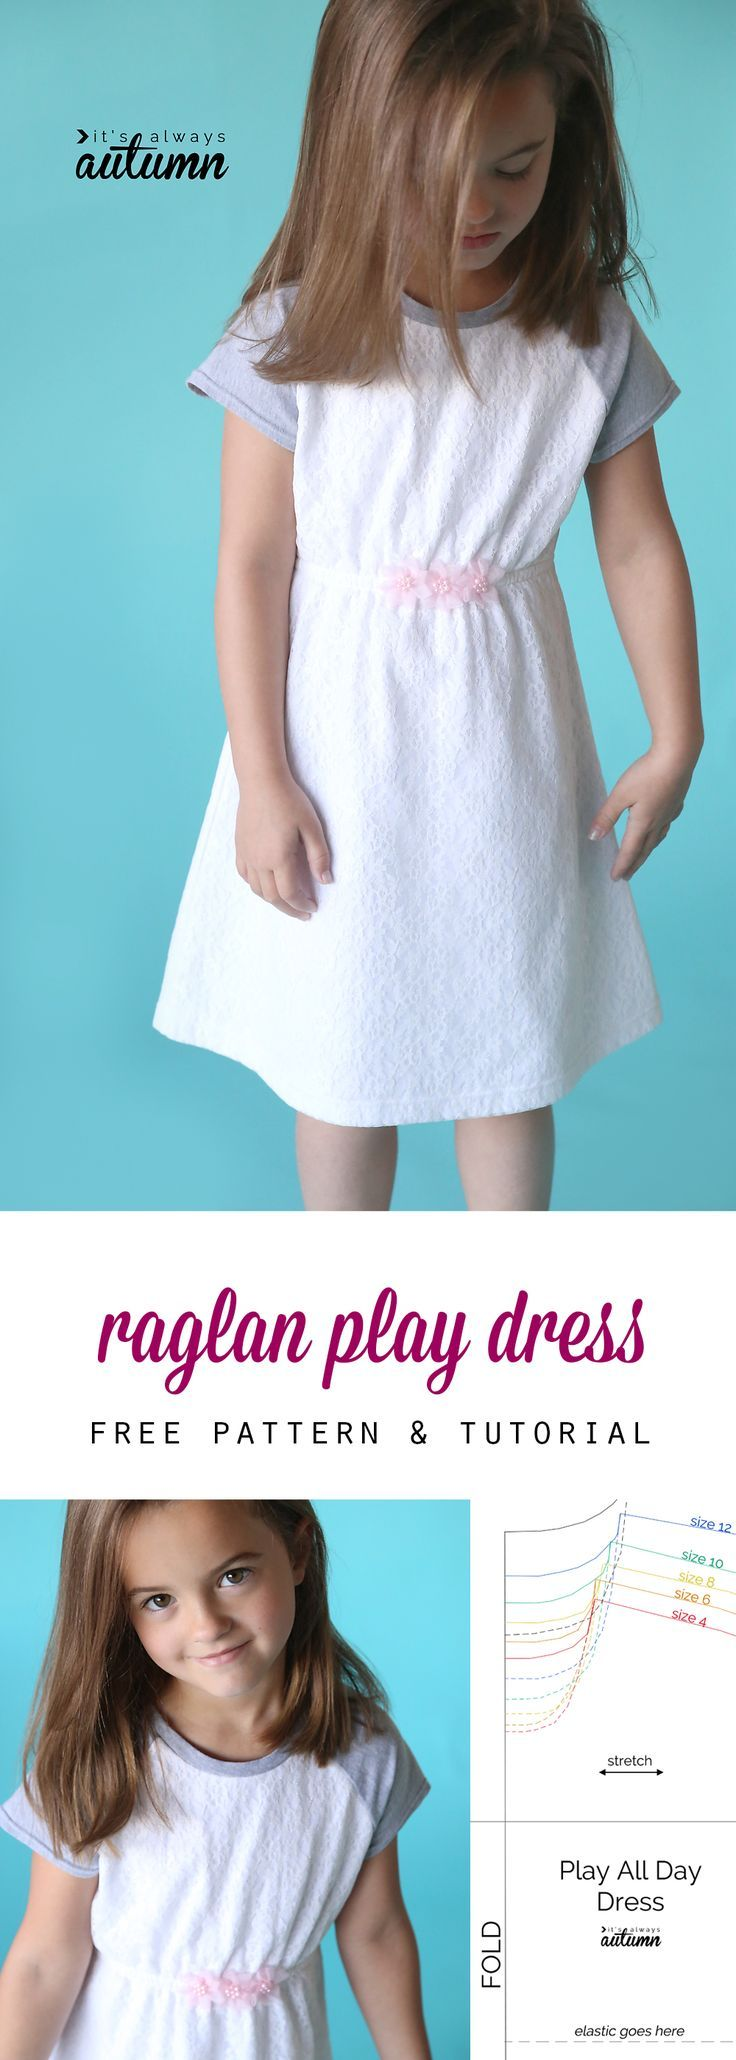 1000+ images about Sewing patterns kids on Pinterest